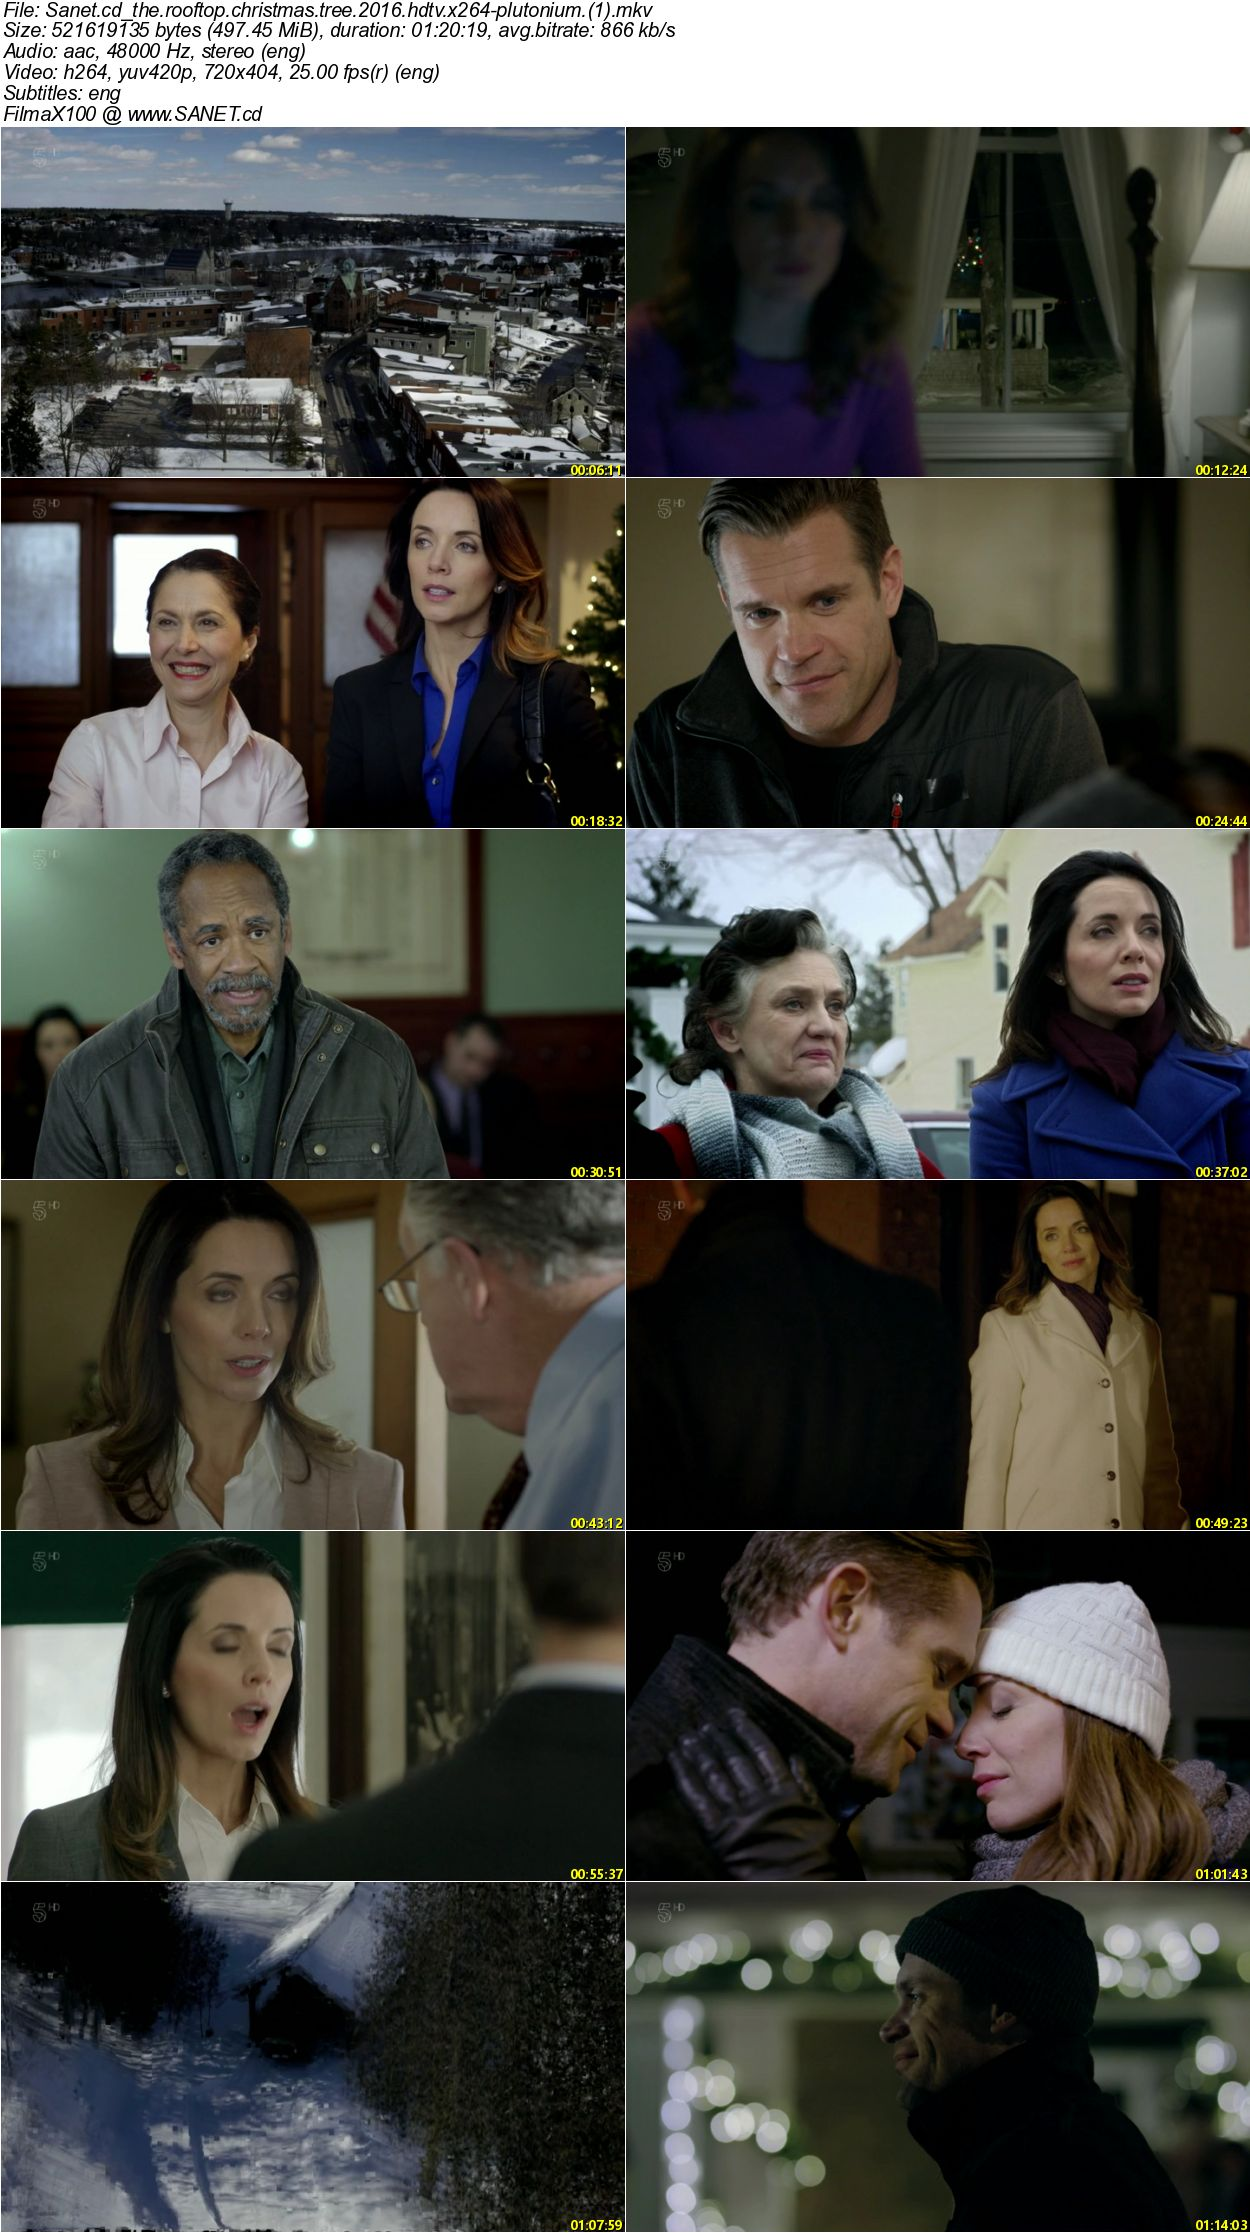 The Rooftop Christmas Tree.Download The Rooftop Christmas Tree 2016 Hdtv X264 Plutonium